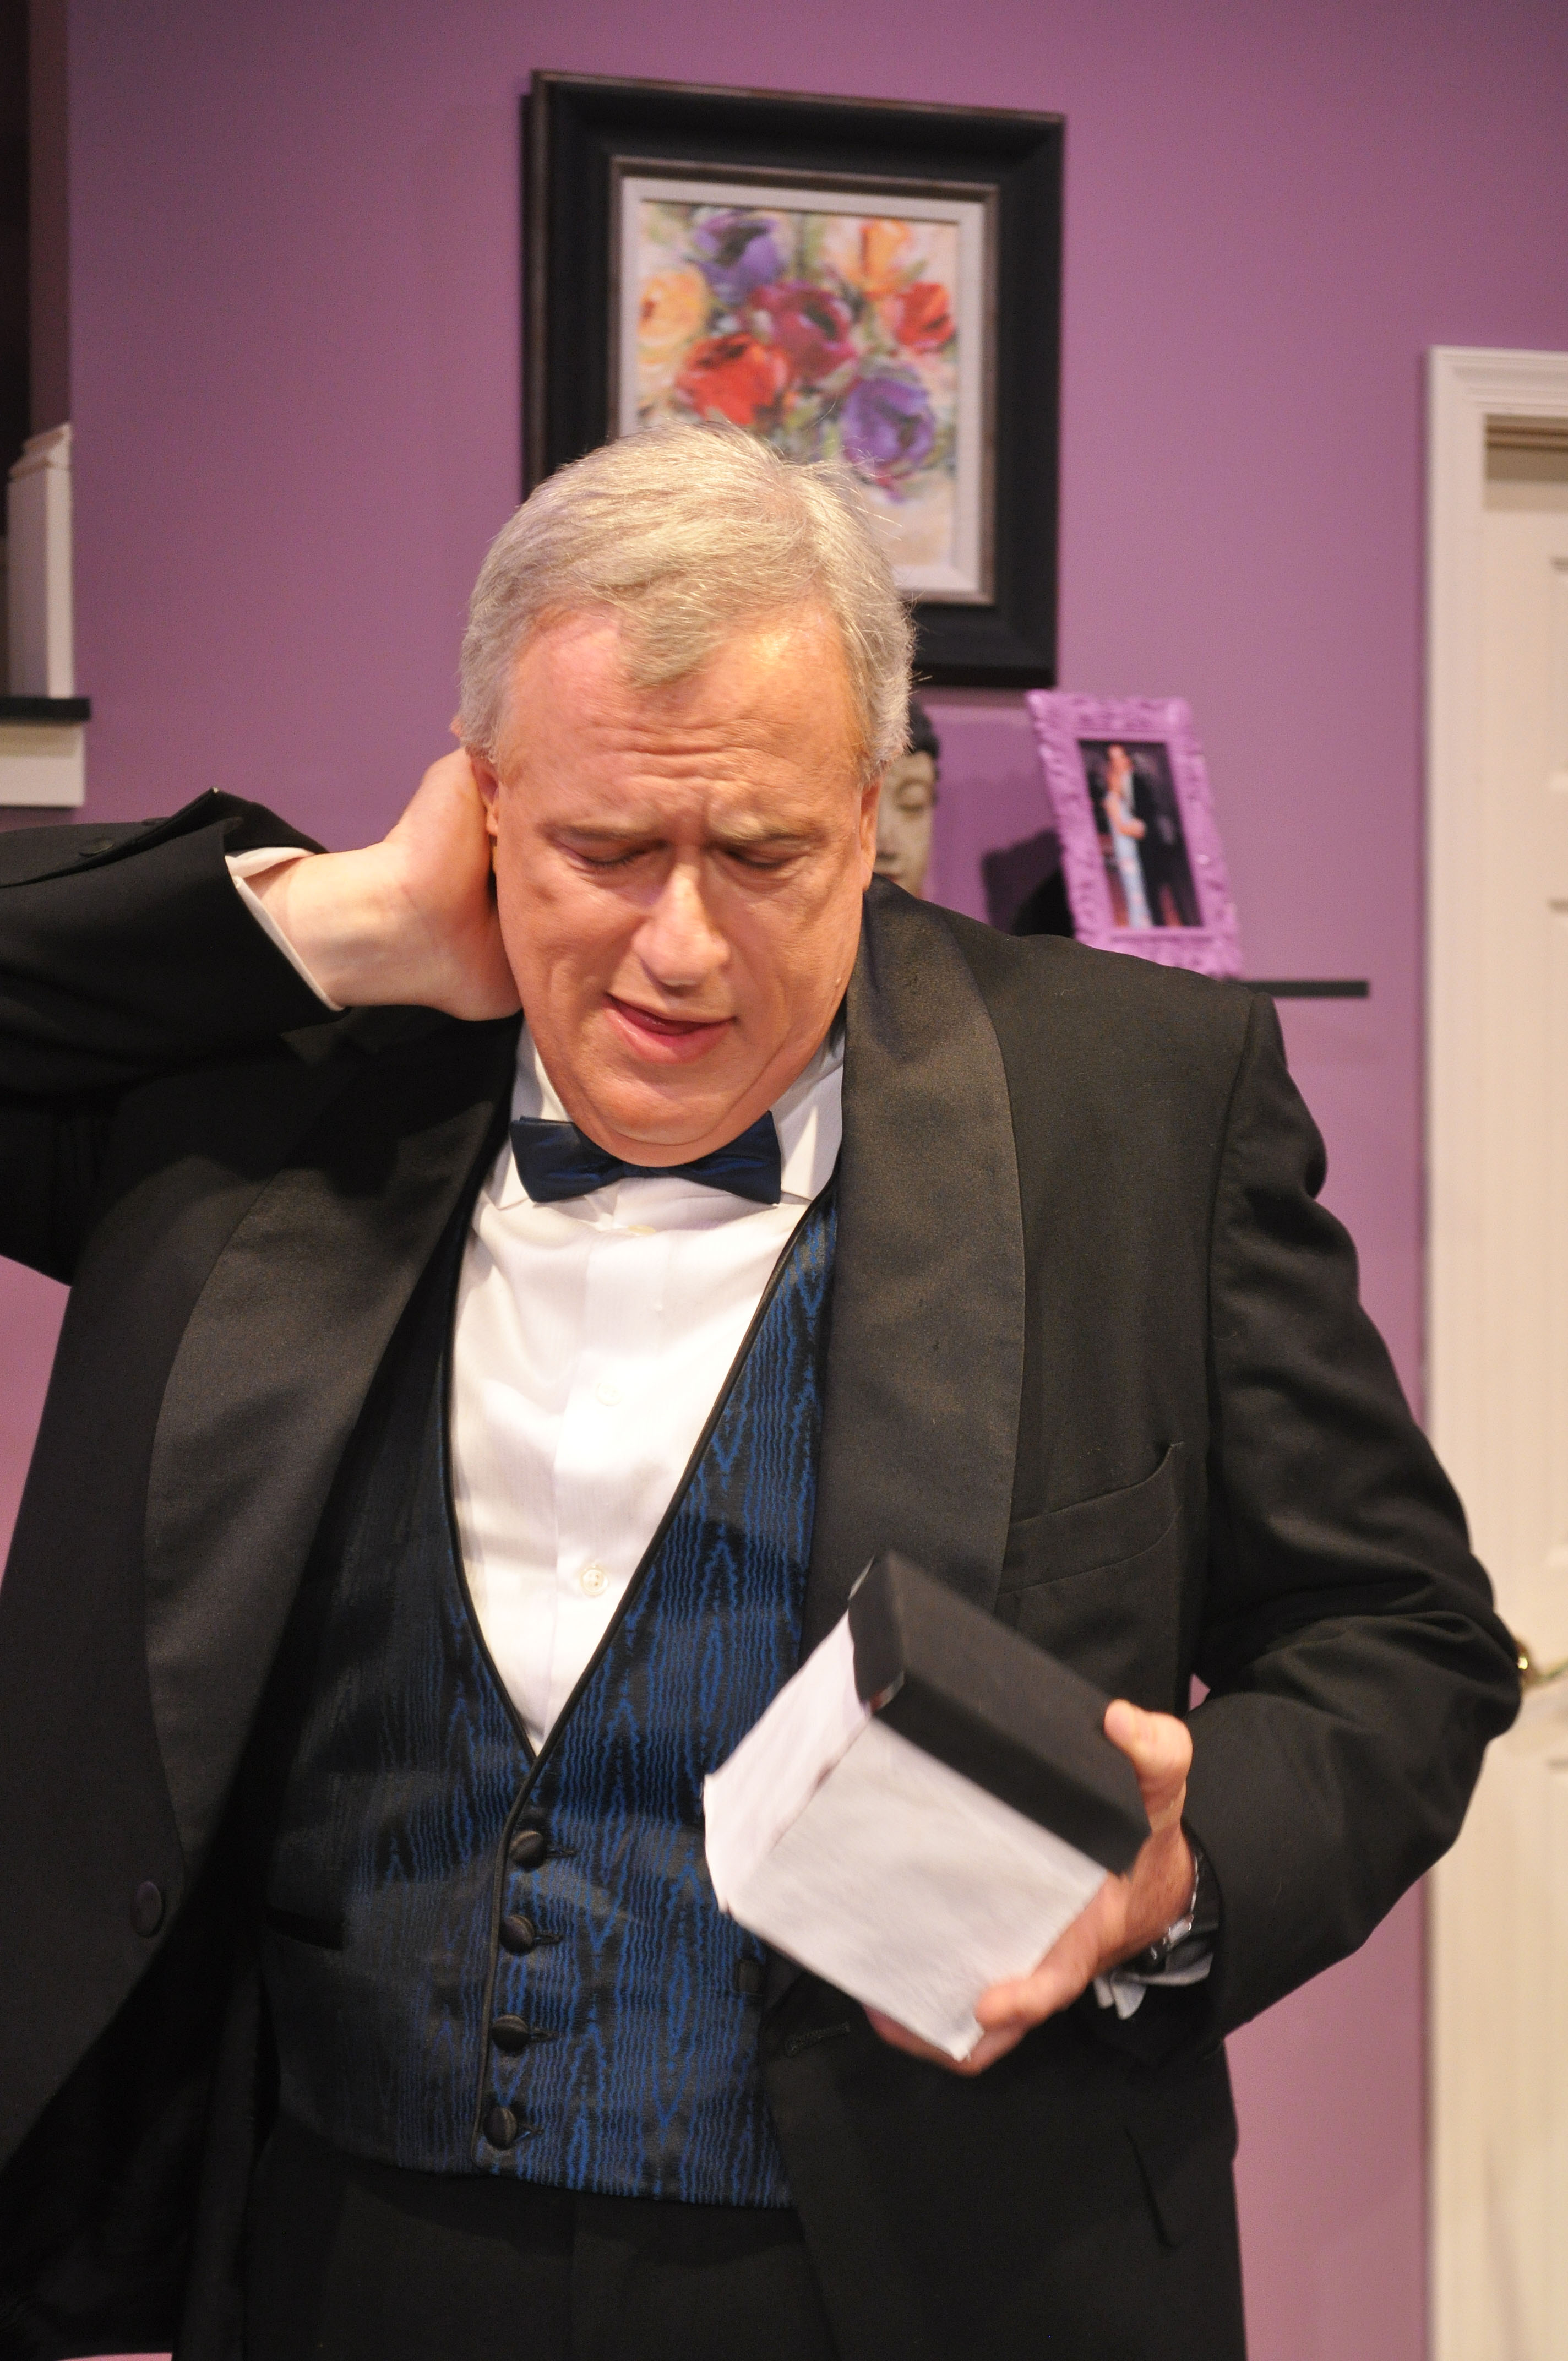 Don Myers as Lenny Ganz - 2014 Best Featured Actor in a Play - DCMTA Photo by Chip Gertzog Providence Players